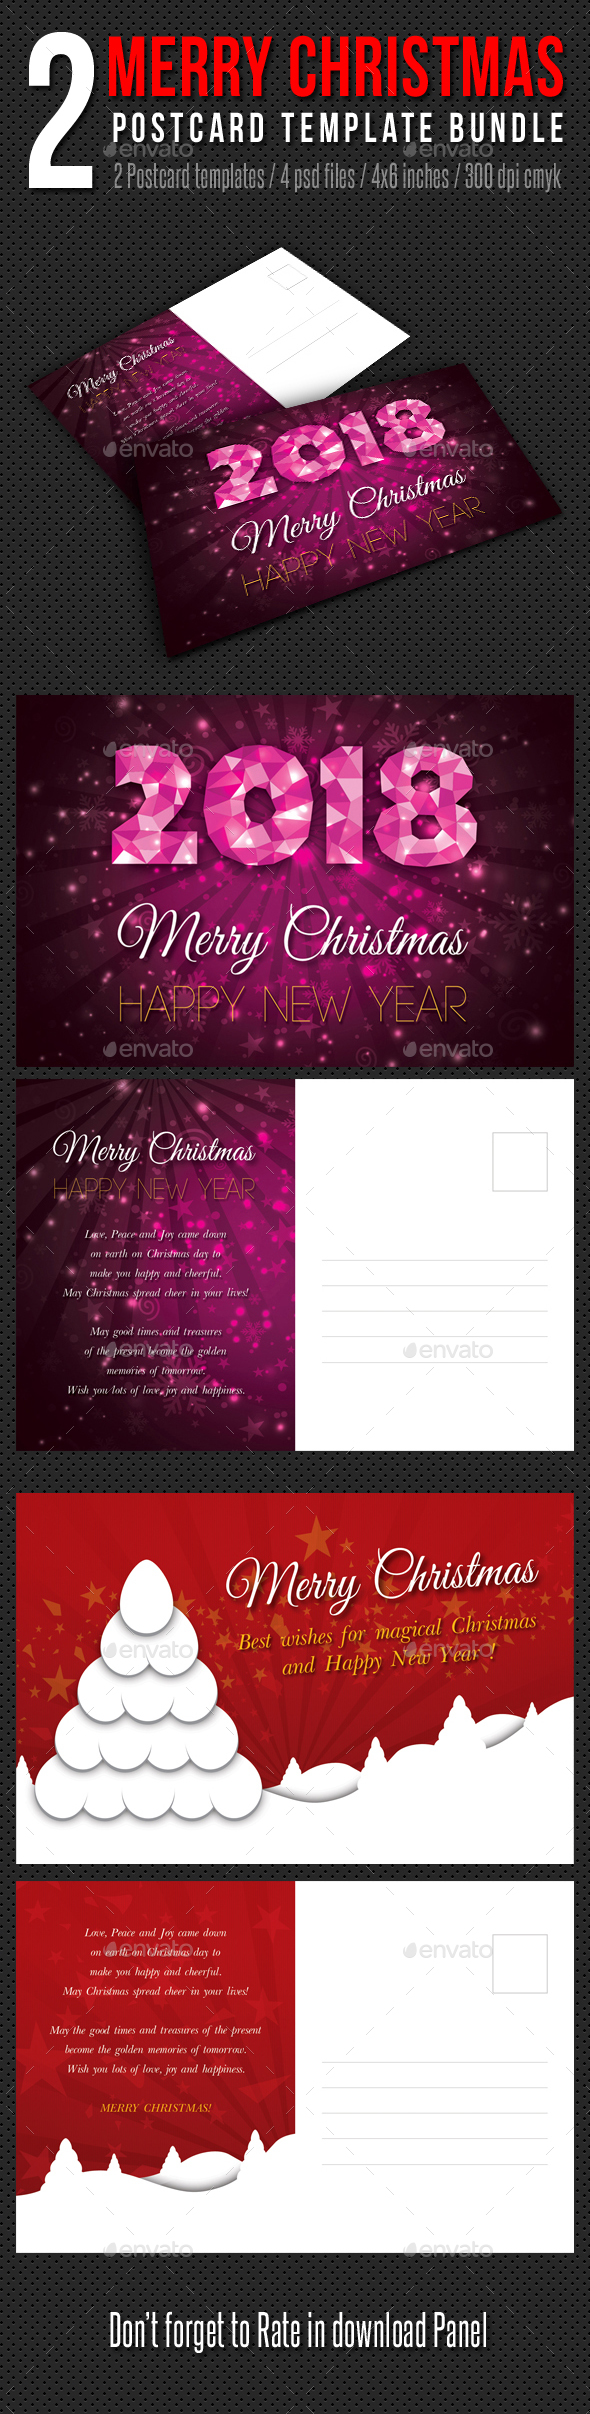 2 in 1 Merry Christmas Postcard Template Bundle - Holiday Greeting Cards